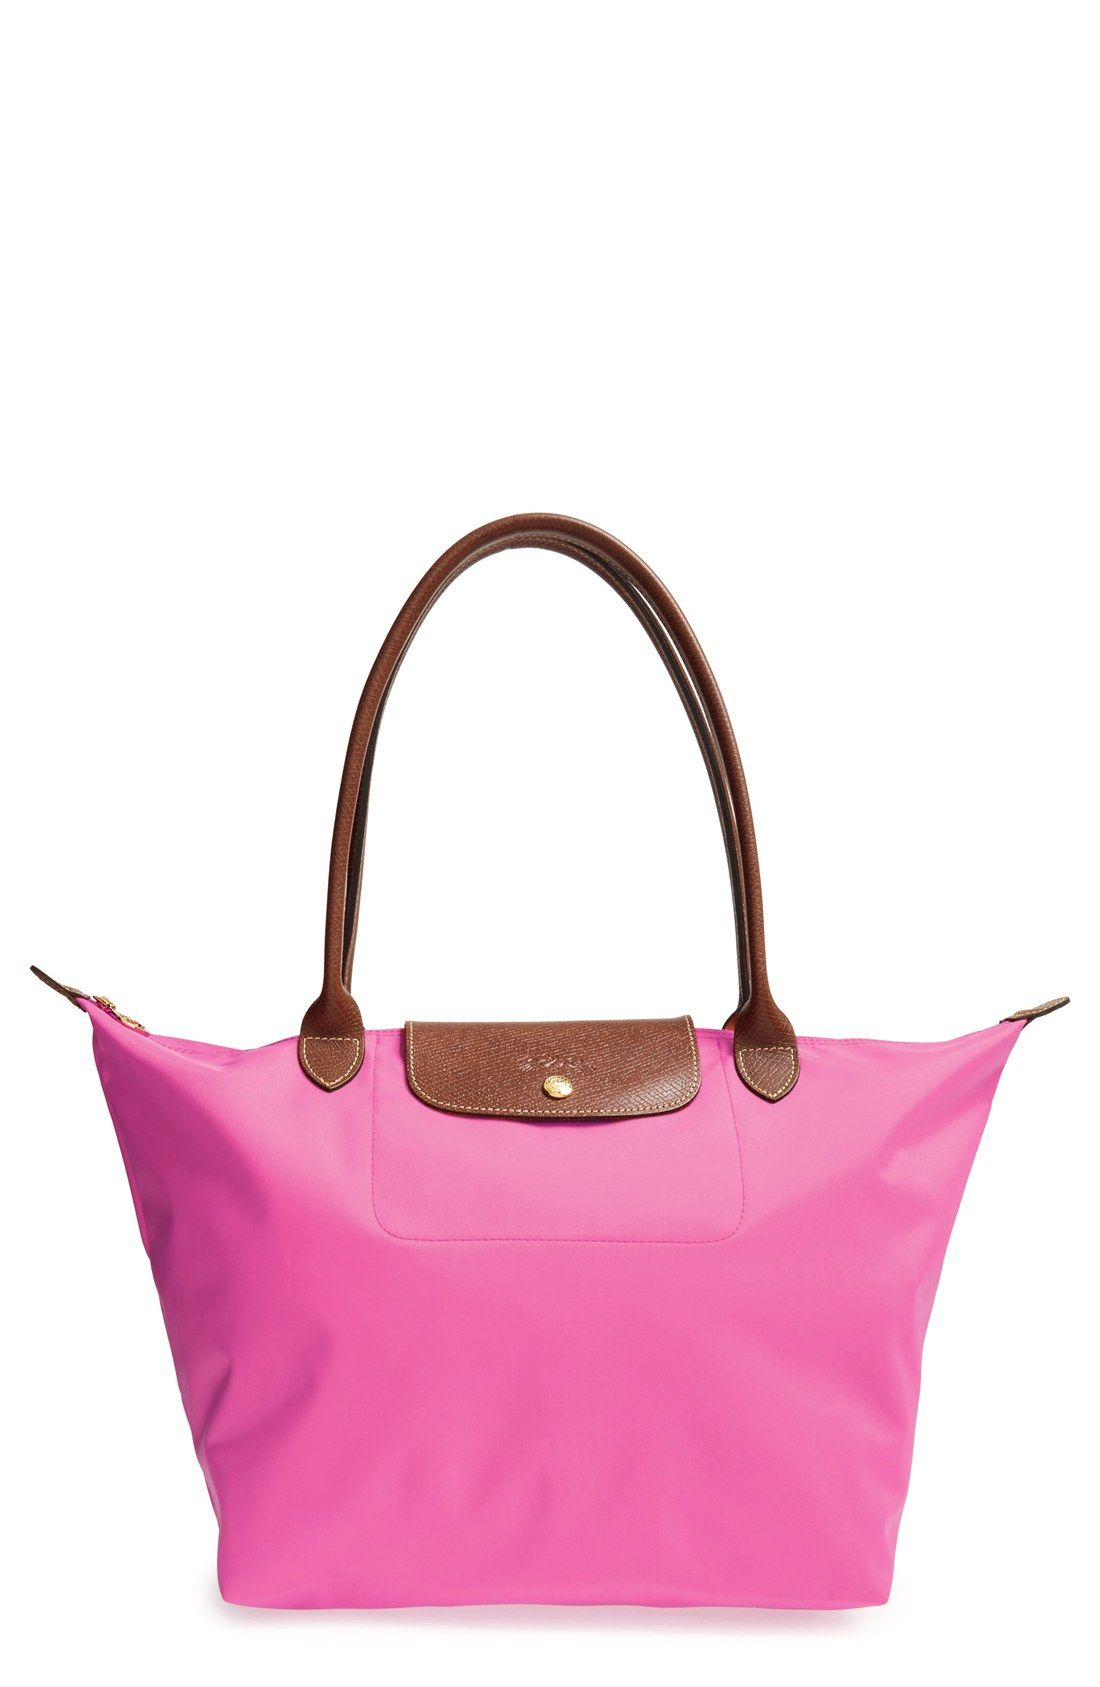 df46f24218b Traveling in style this summer with this pink Longchamp tote ...